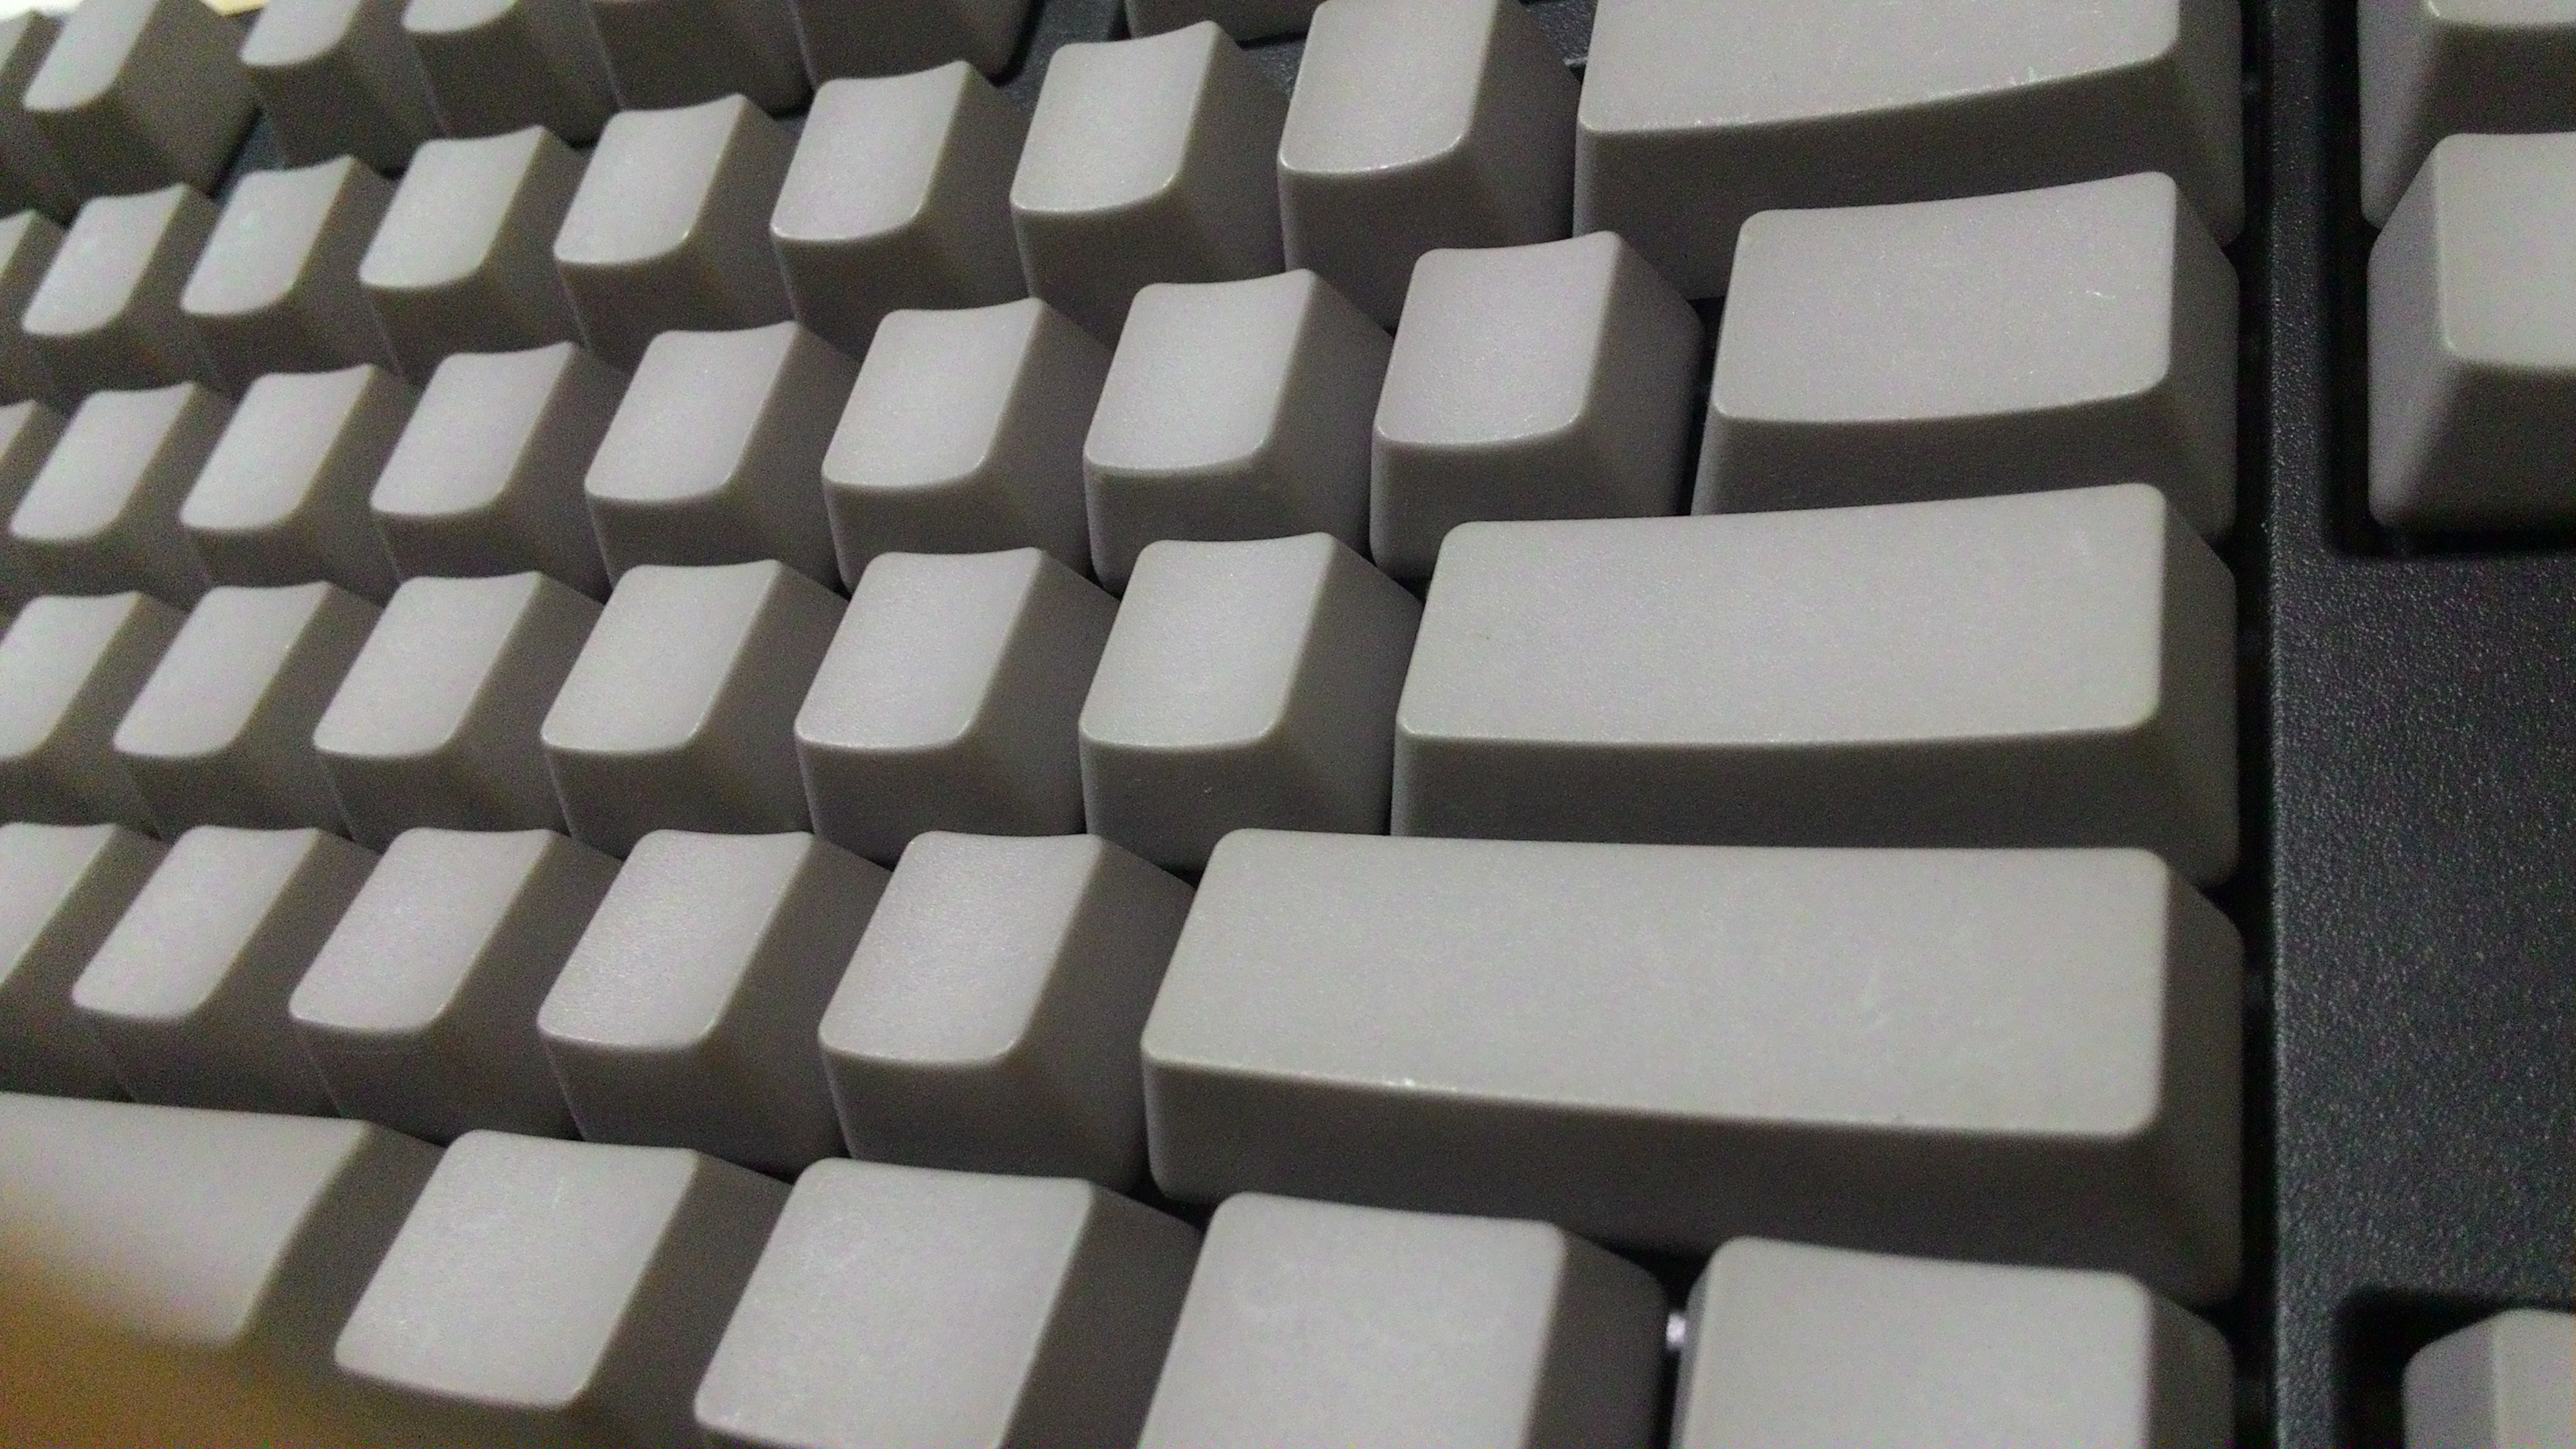 https://github.com/float-tw/float-blog/raw/master/img/pbt-keycap-staining/P_20150503_231629.jpg